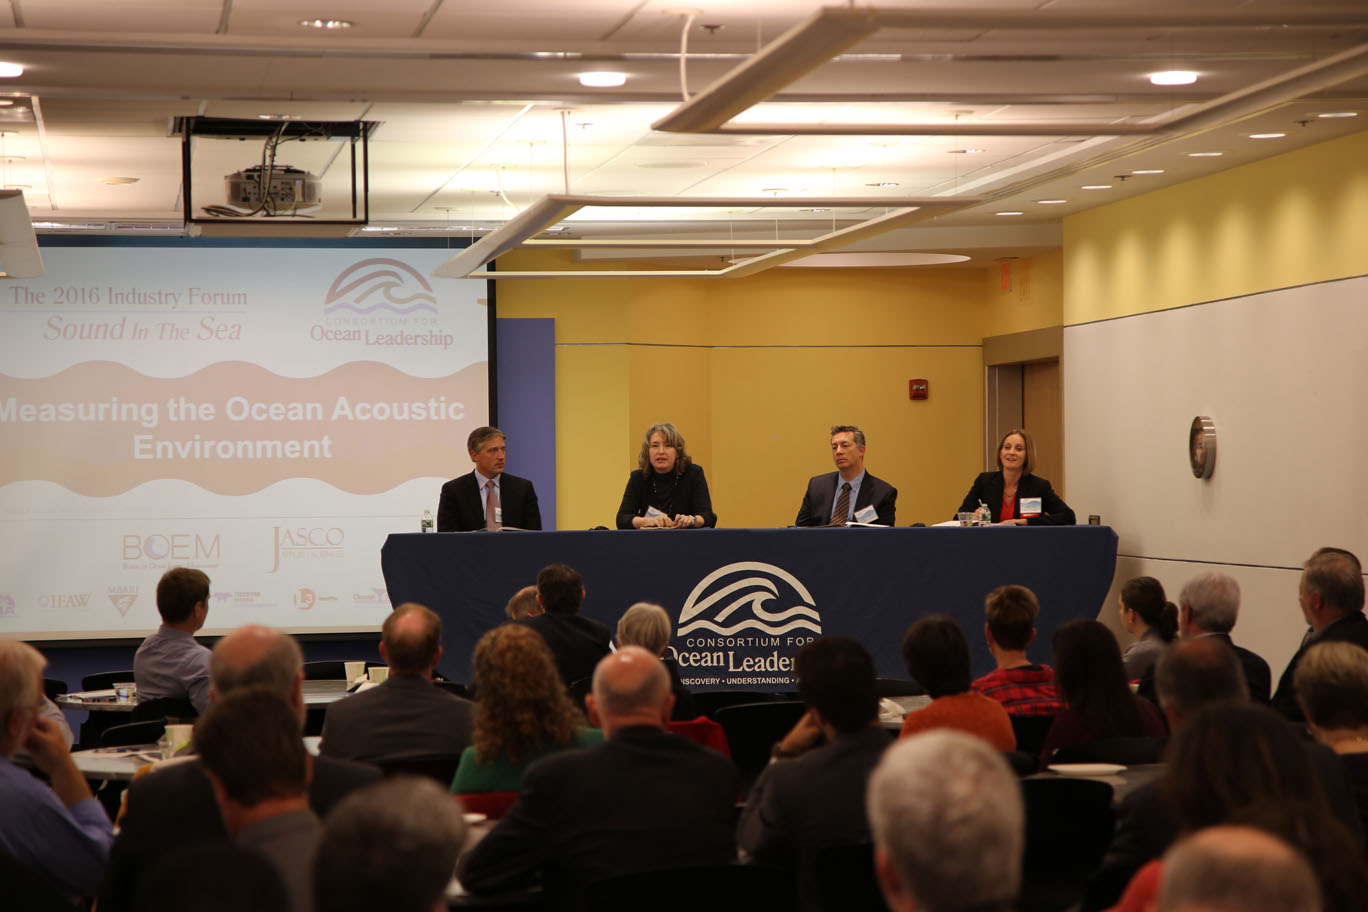 Cynthia Pyć (far right) speaks at Consortium for Ocean Leadership workshop.